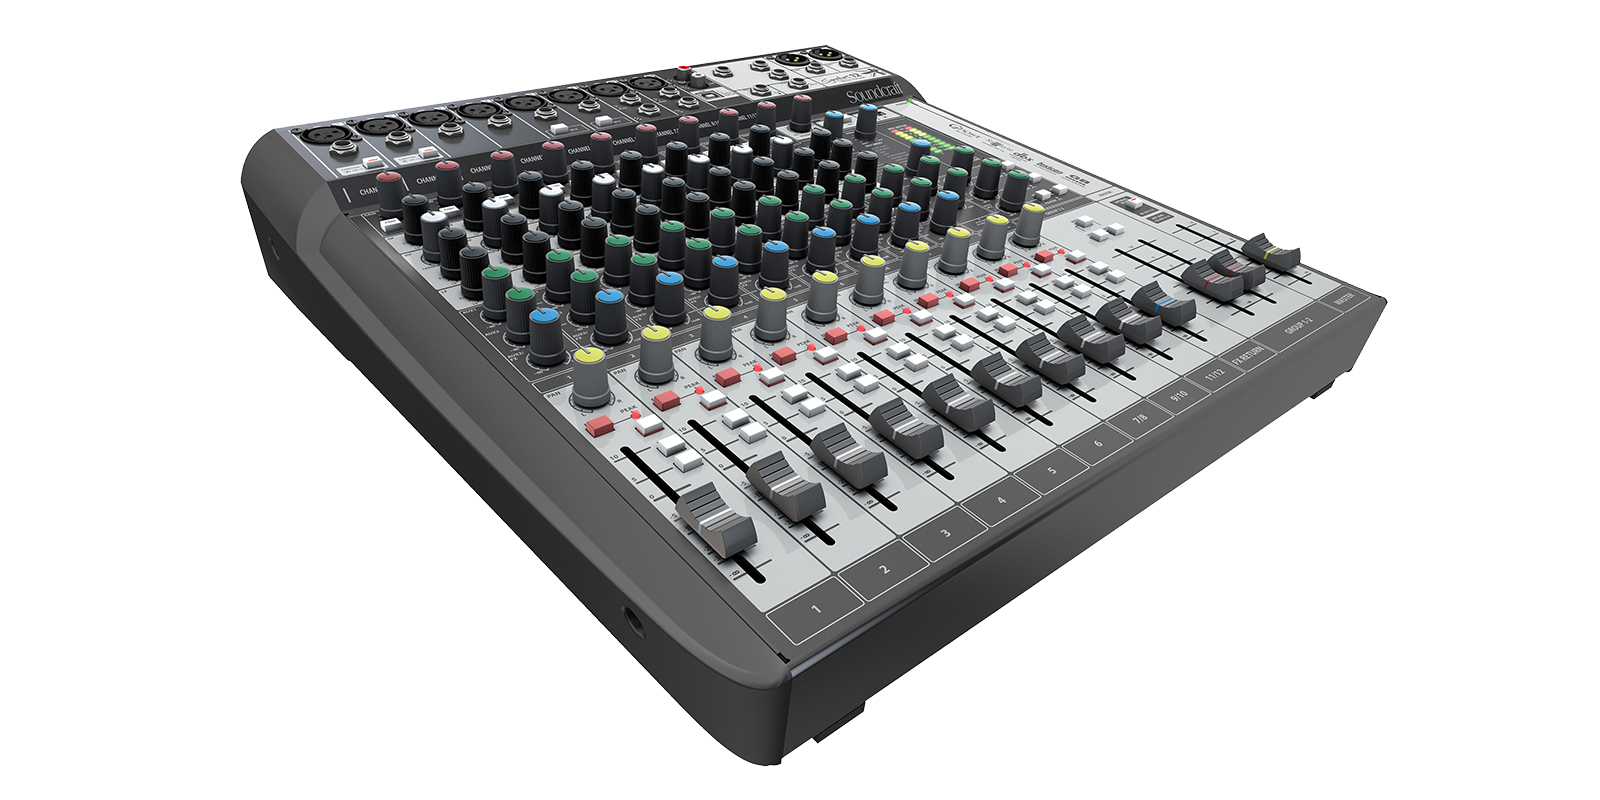 Wipschakelaar 220v Signature 12 Mtk Soundcraft Professional Audio Mixers